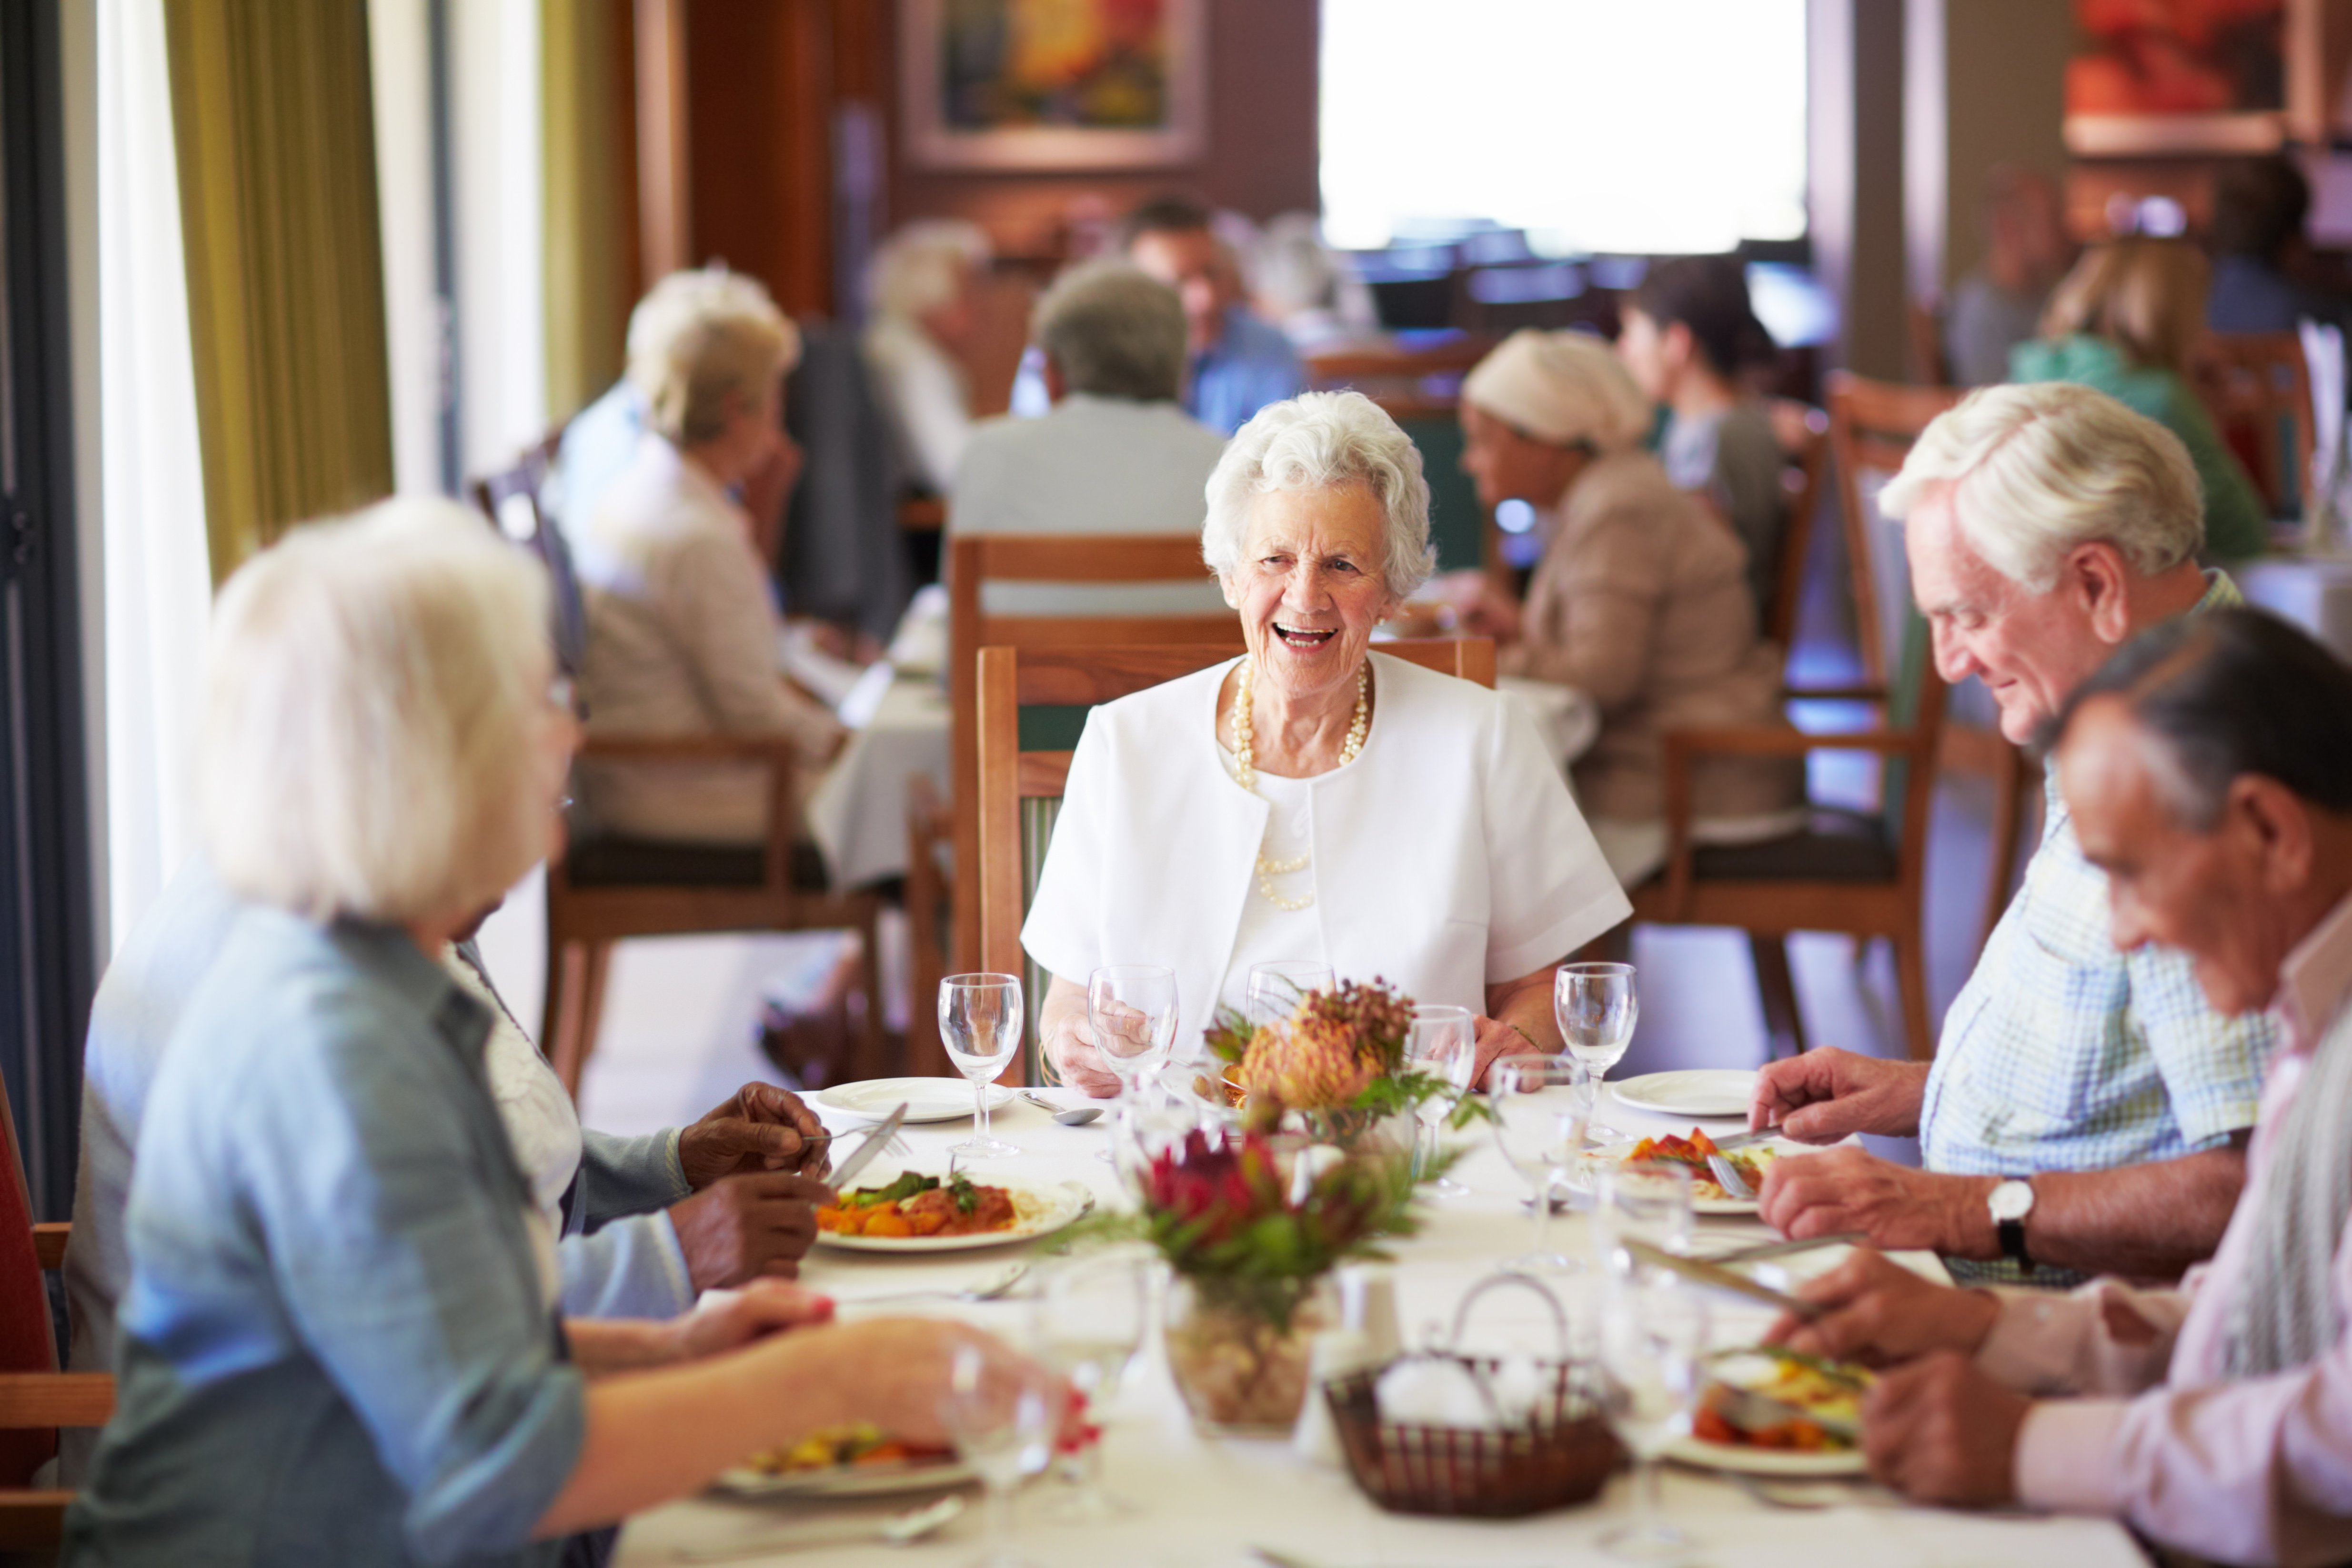 Why Eating Together Is Better for Seniors